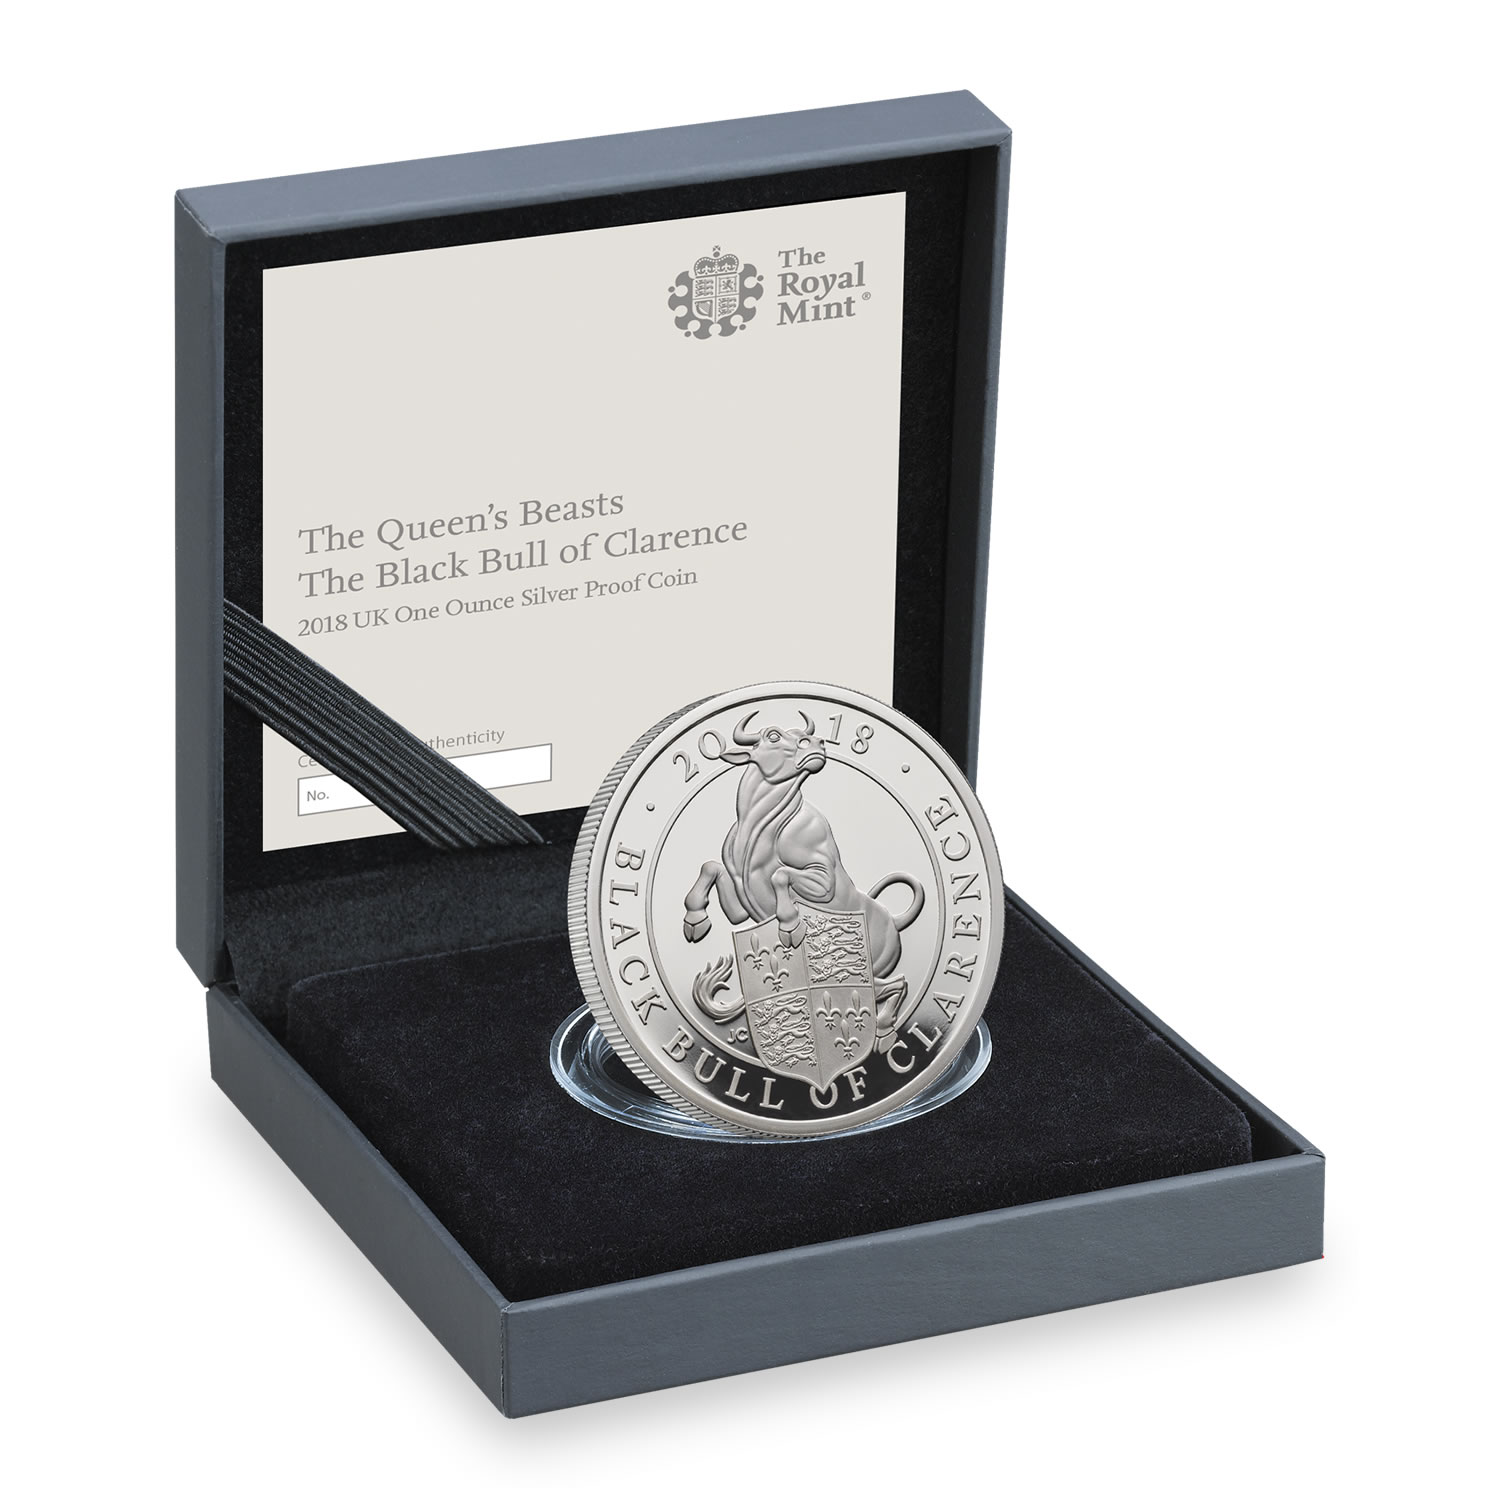 The Black Bull of Clarence 2018 UK One-Ounce Silver Proof Coin